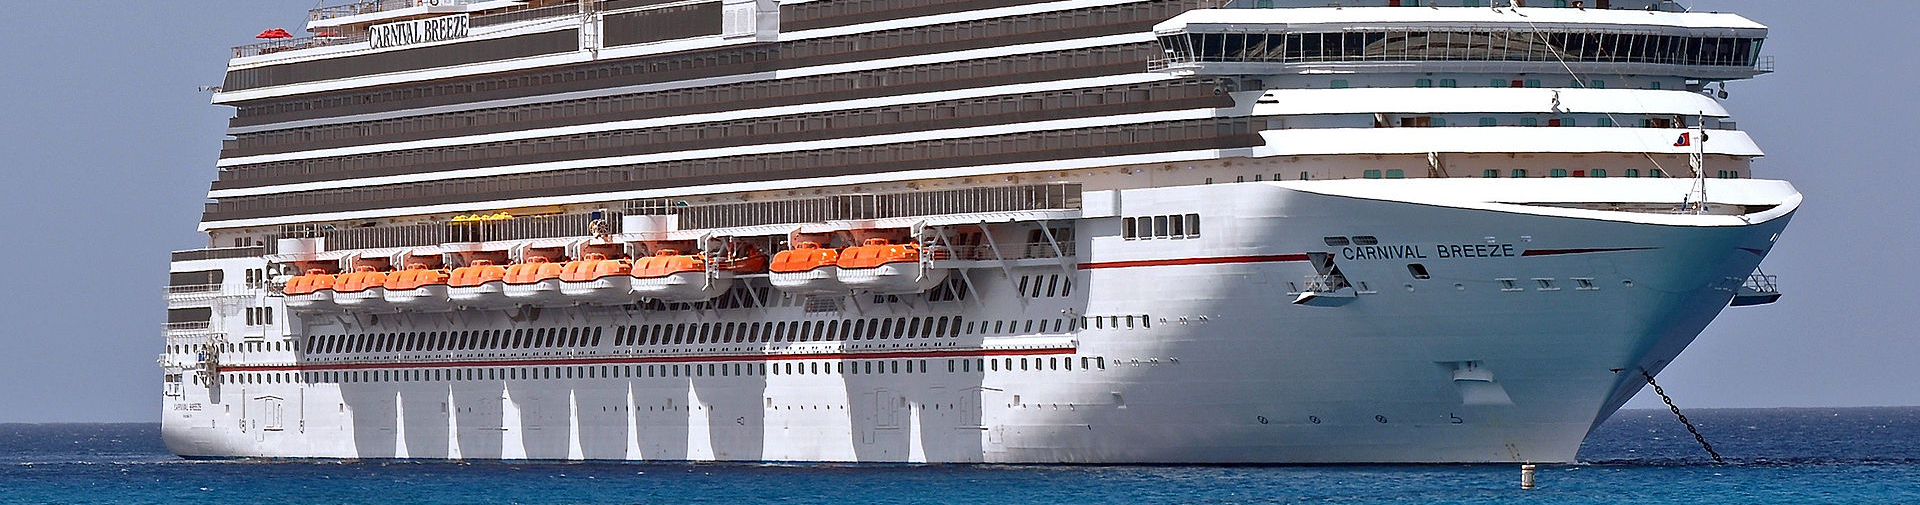 Carnival Cruise Lines Breeze